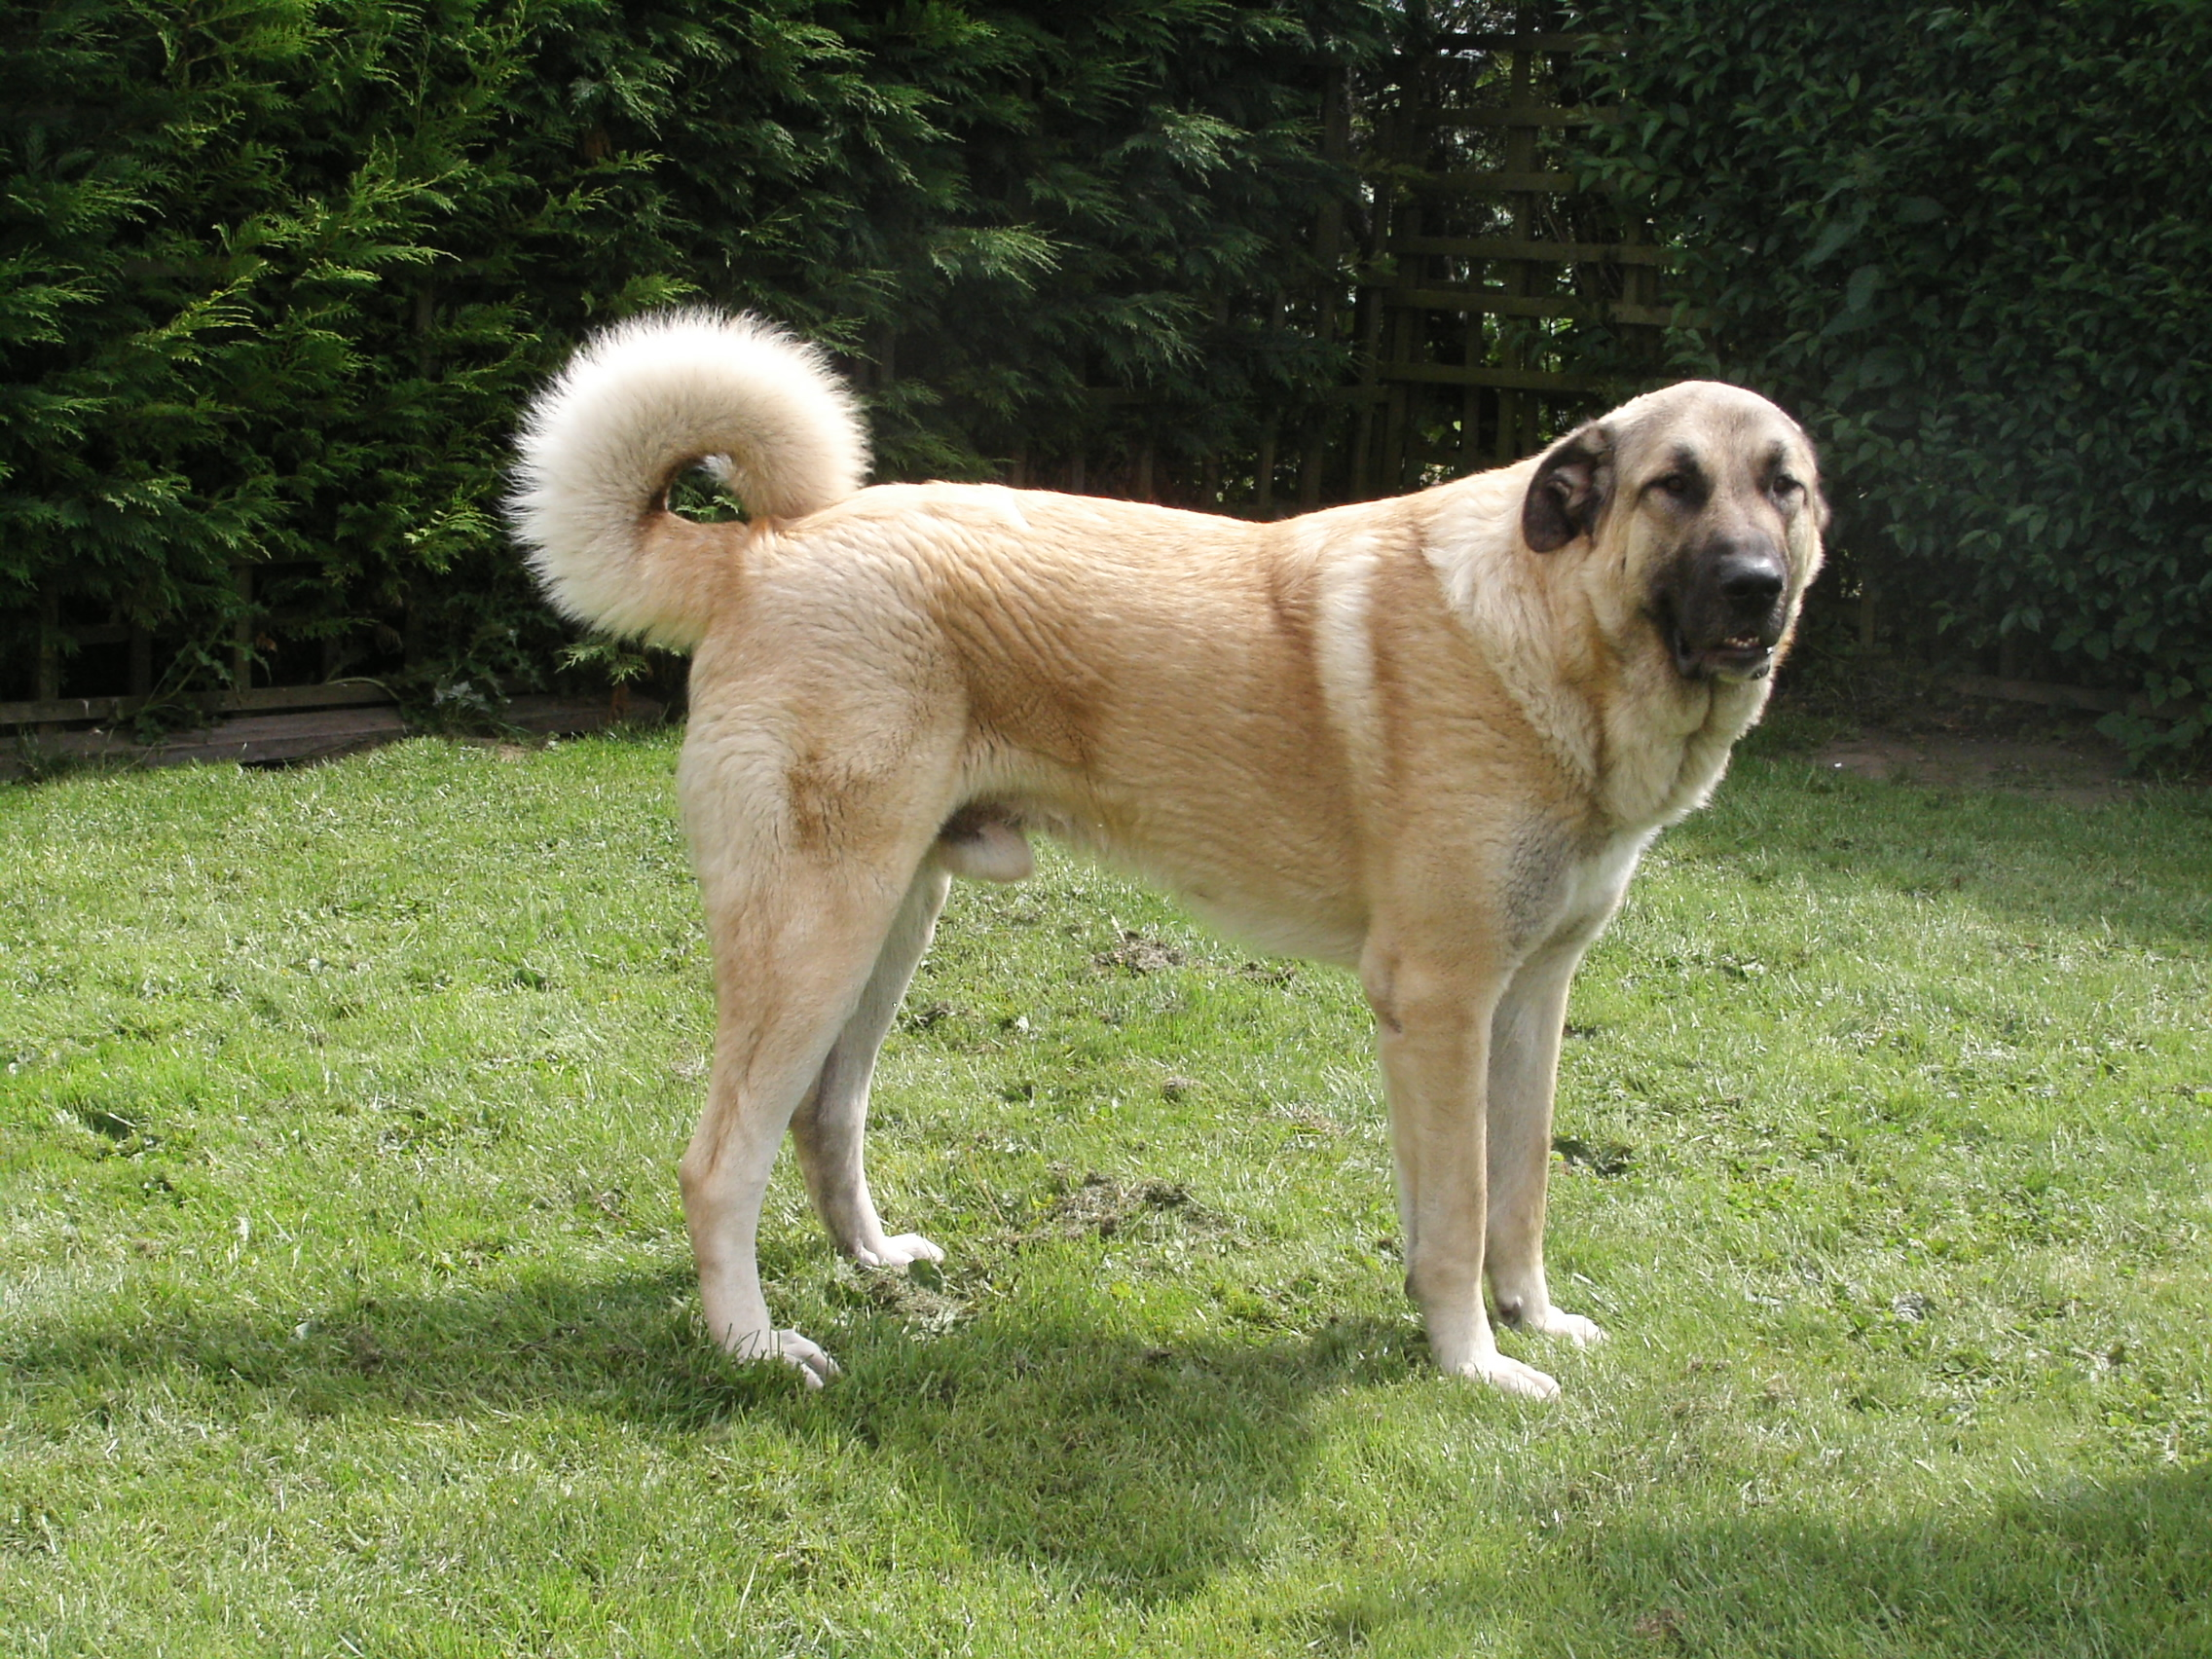 Anatolian Shepherd Dog - Diet, Pictures, Breeding, Facts ...